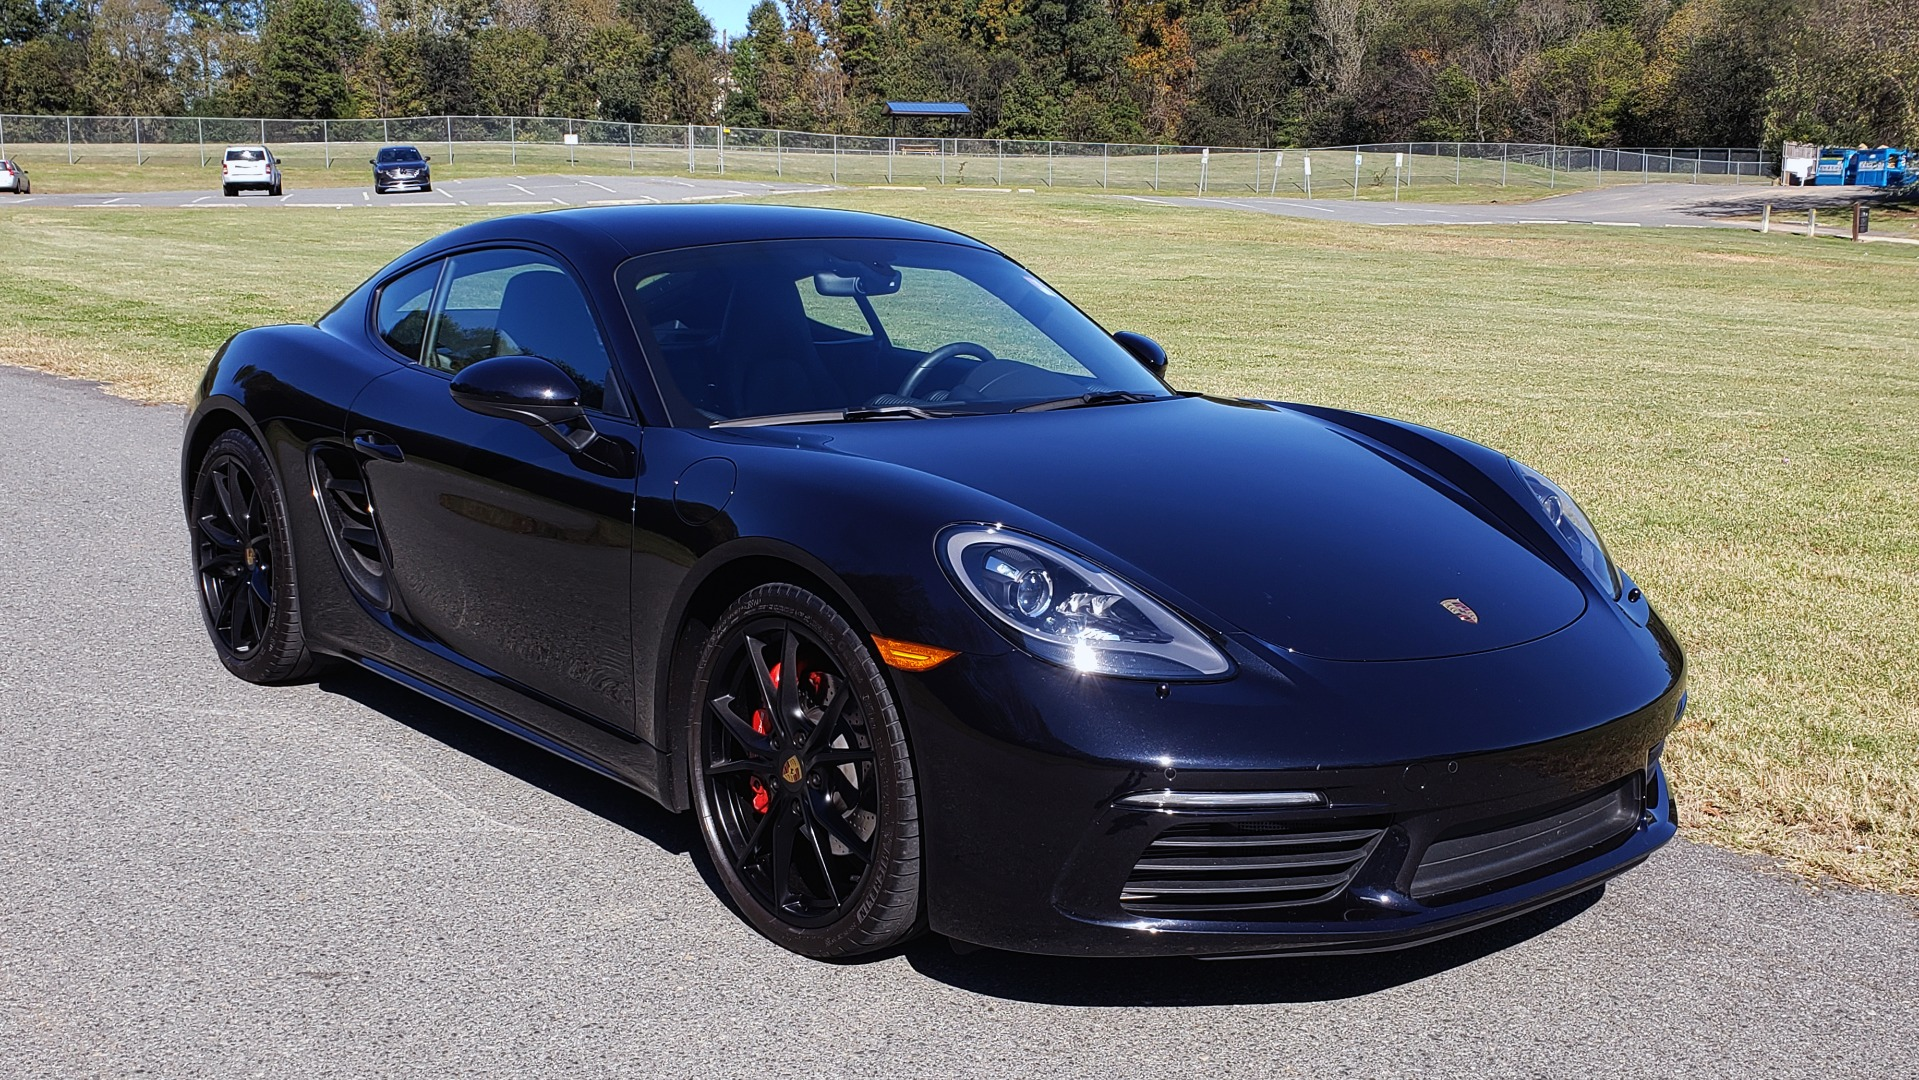 Used 2019 Porsche 718 CAYMAN S COUPE / PDK TRANS / LCA / BOSE / HTD STS / LIGHT DESIGN PKG for sale $67,999 at Formula Imports in Charlotte NC 28227 6